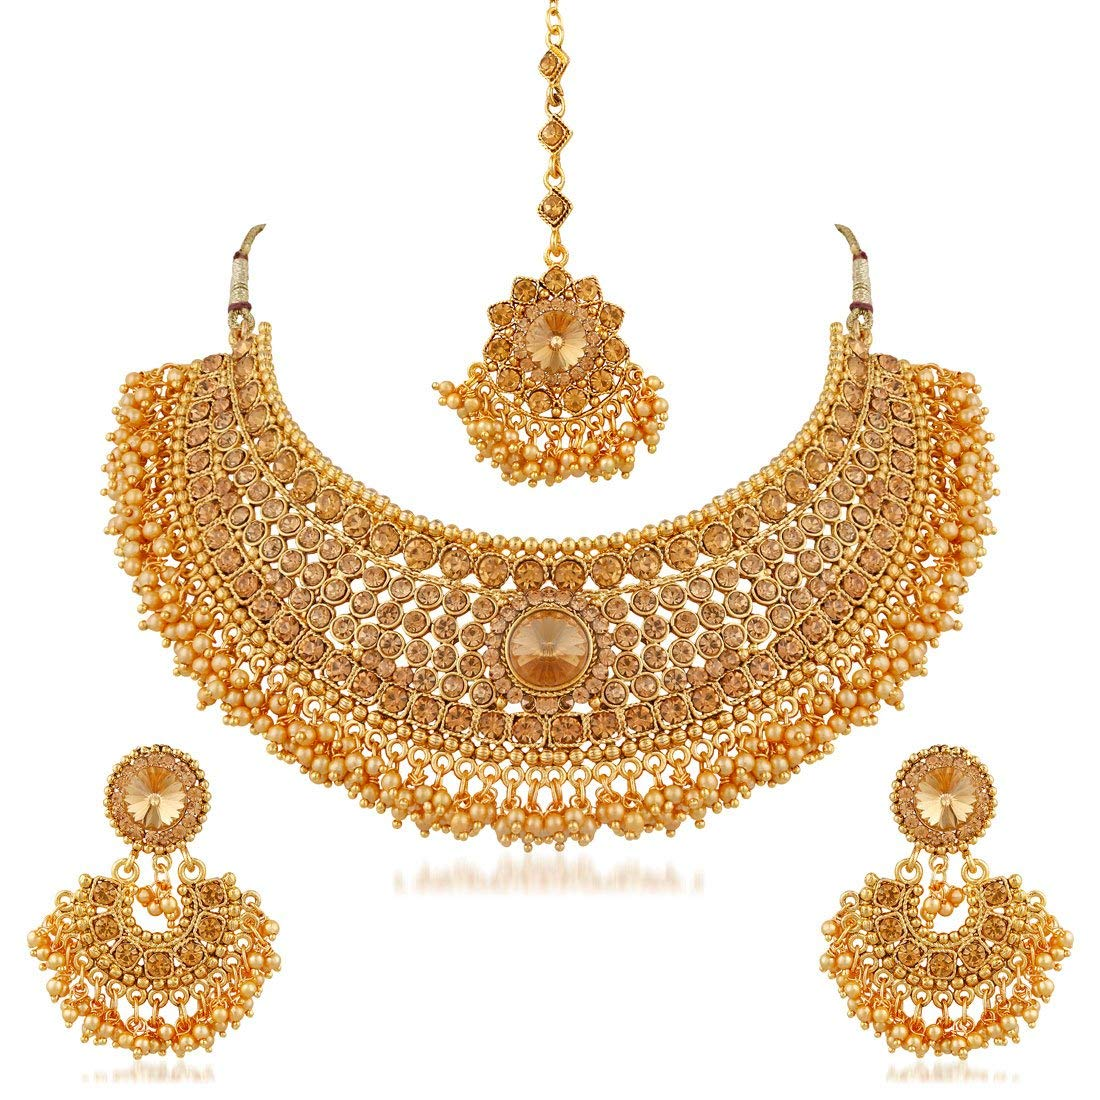 Apara Bridal Gold Plated Pearl LCT Stones Necklace Set For Women (Golden)- Amazon